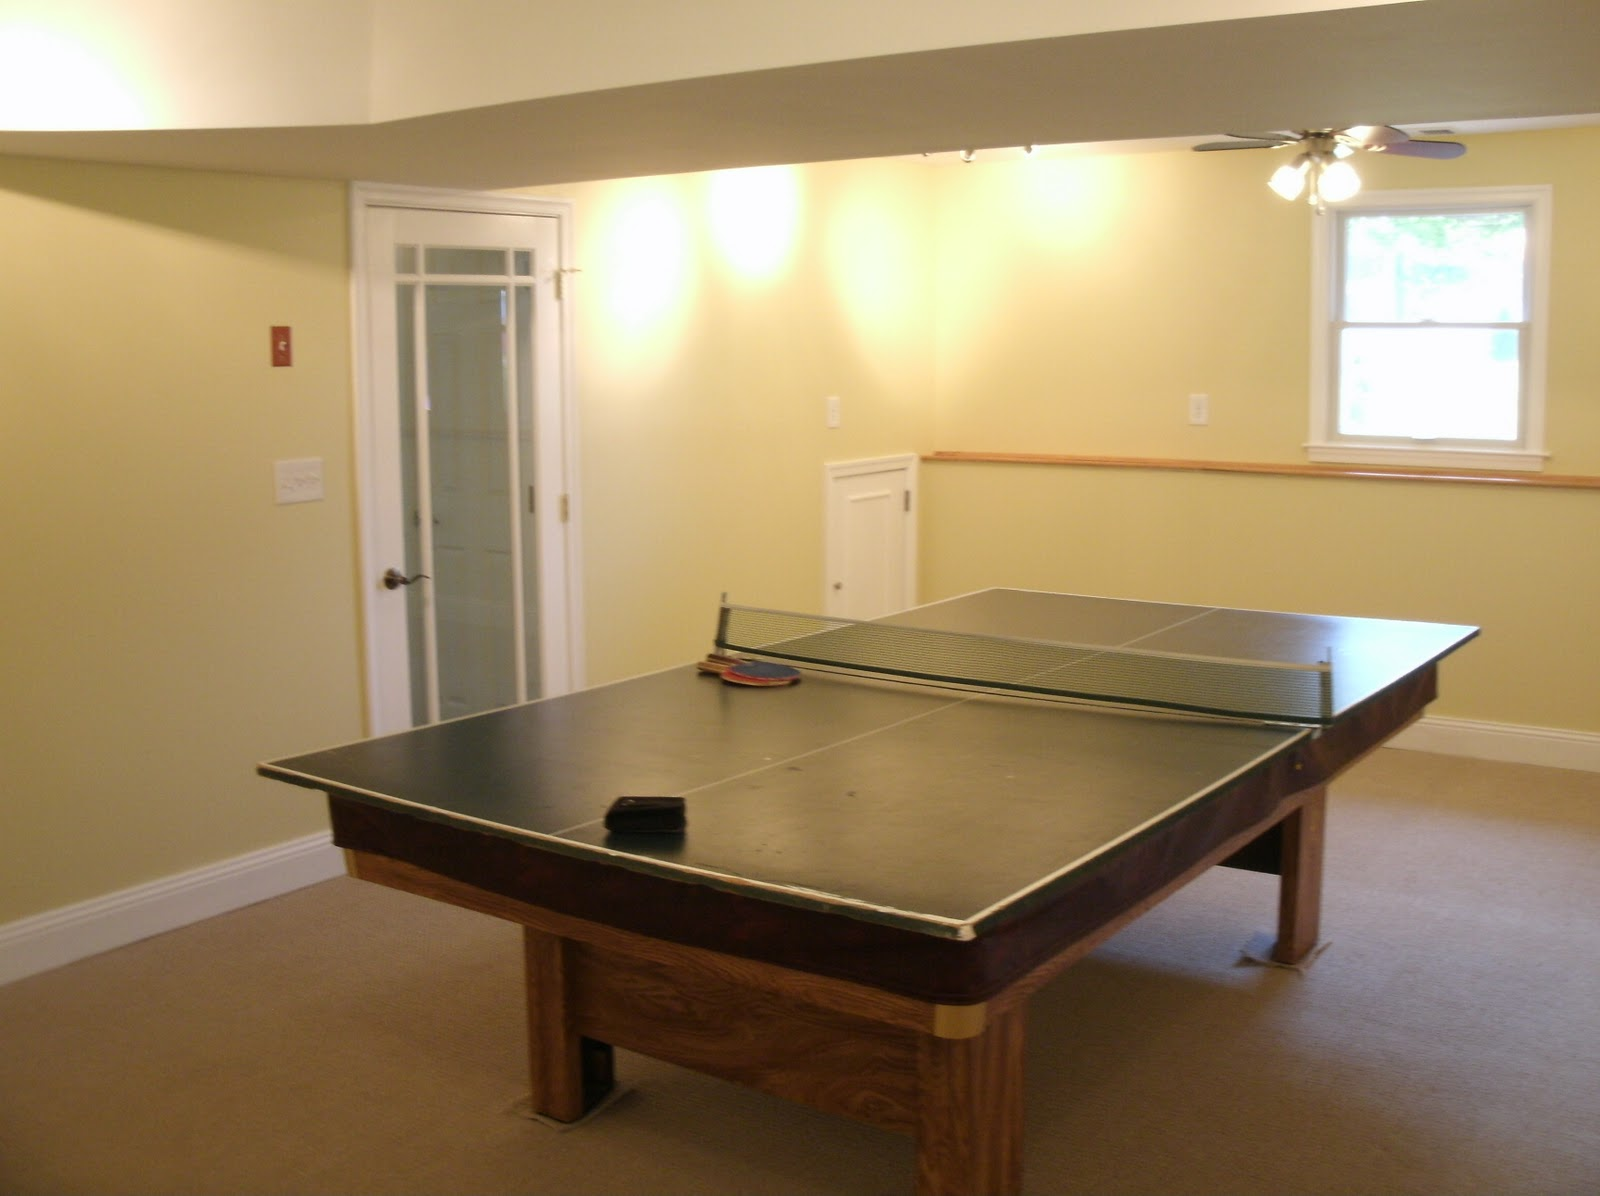 Home Remodeling And Improvements Tips And How To 39 S: basement game room ideas